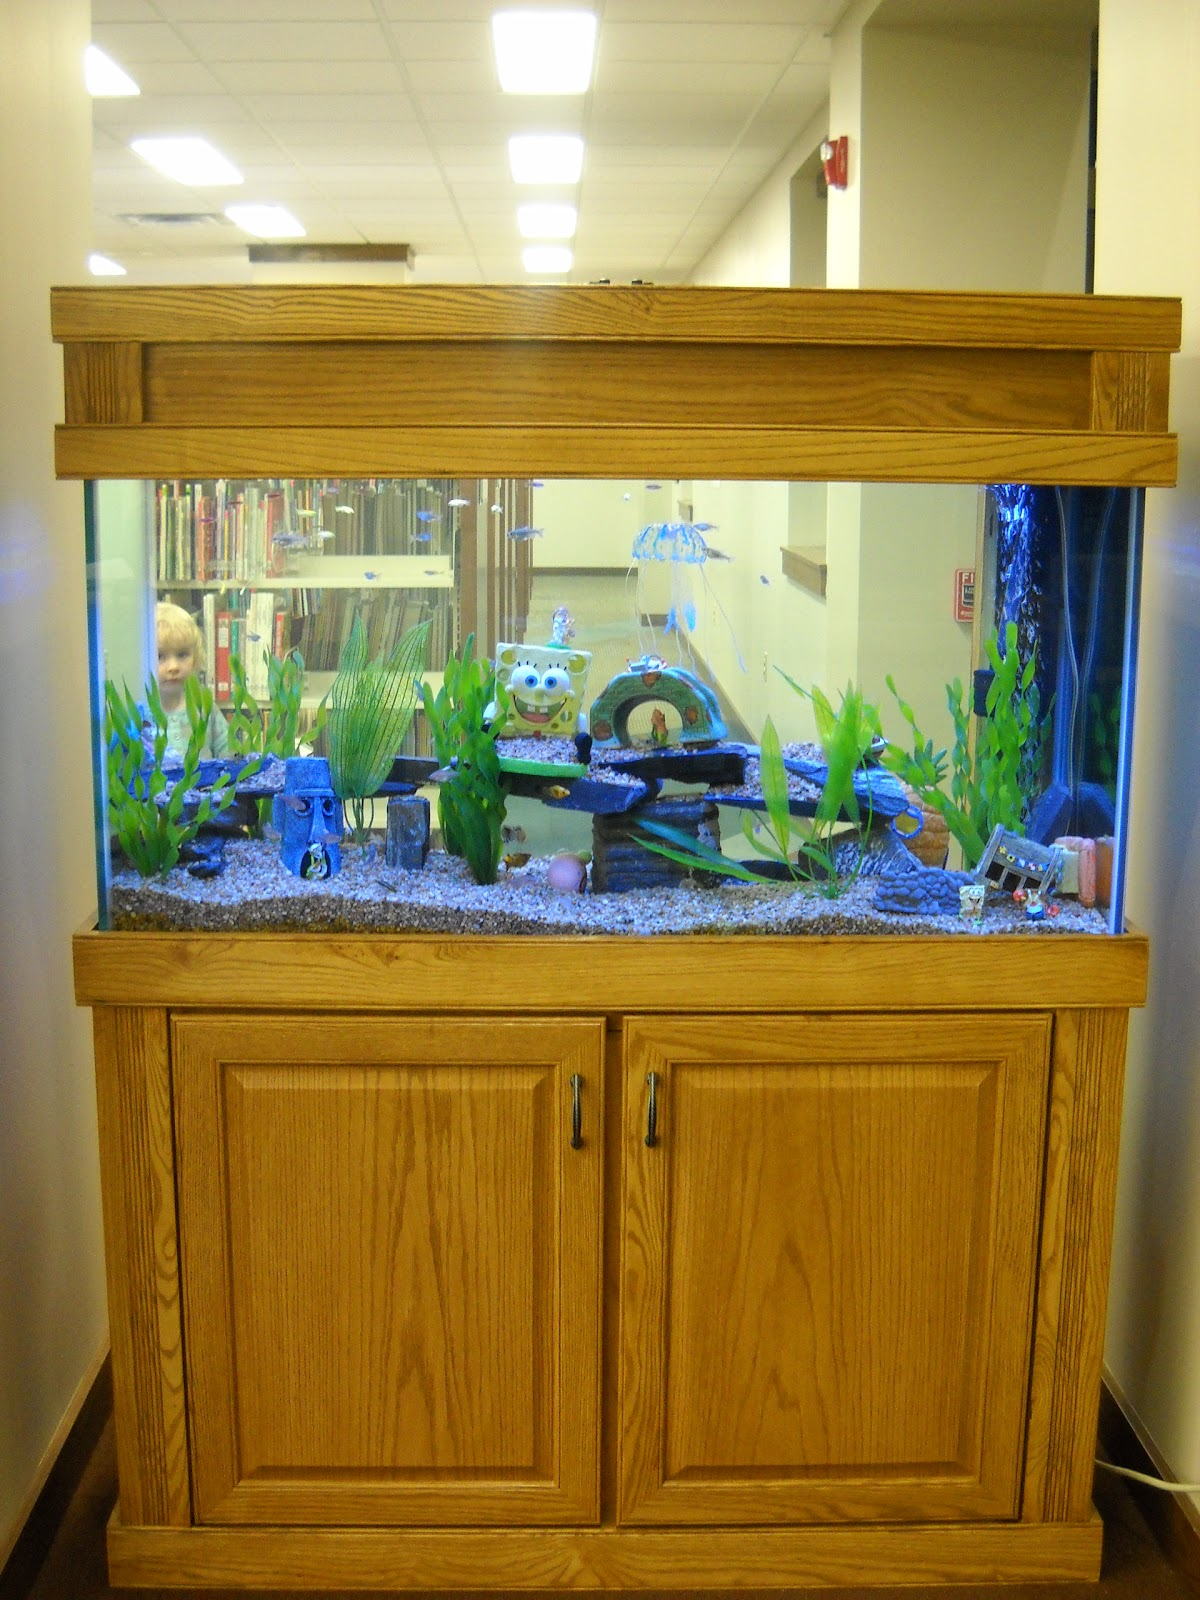 mukwonago community library blog new fish tank in the